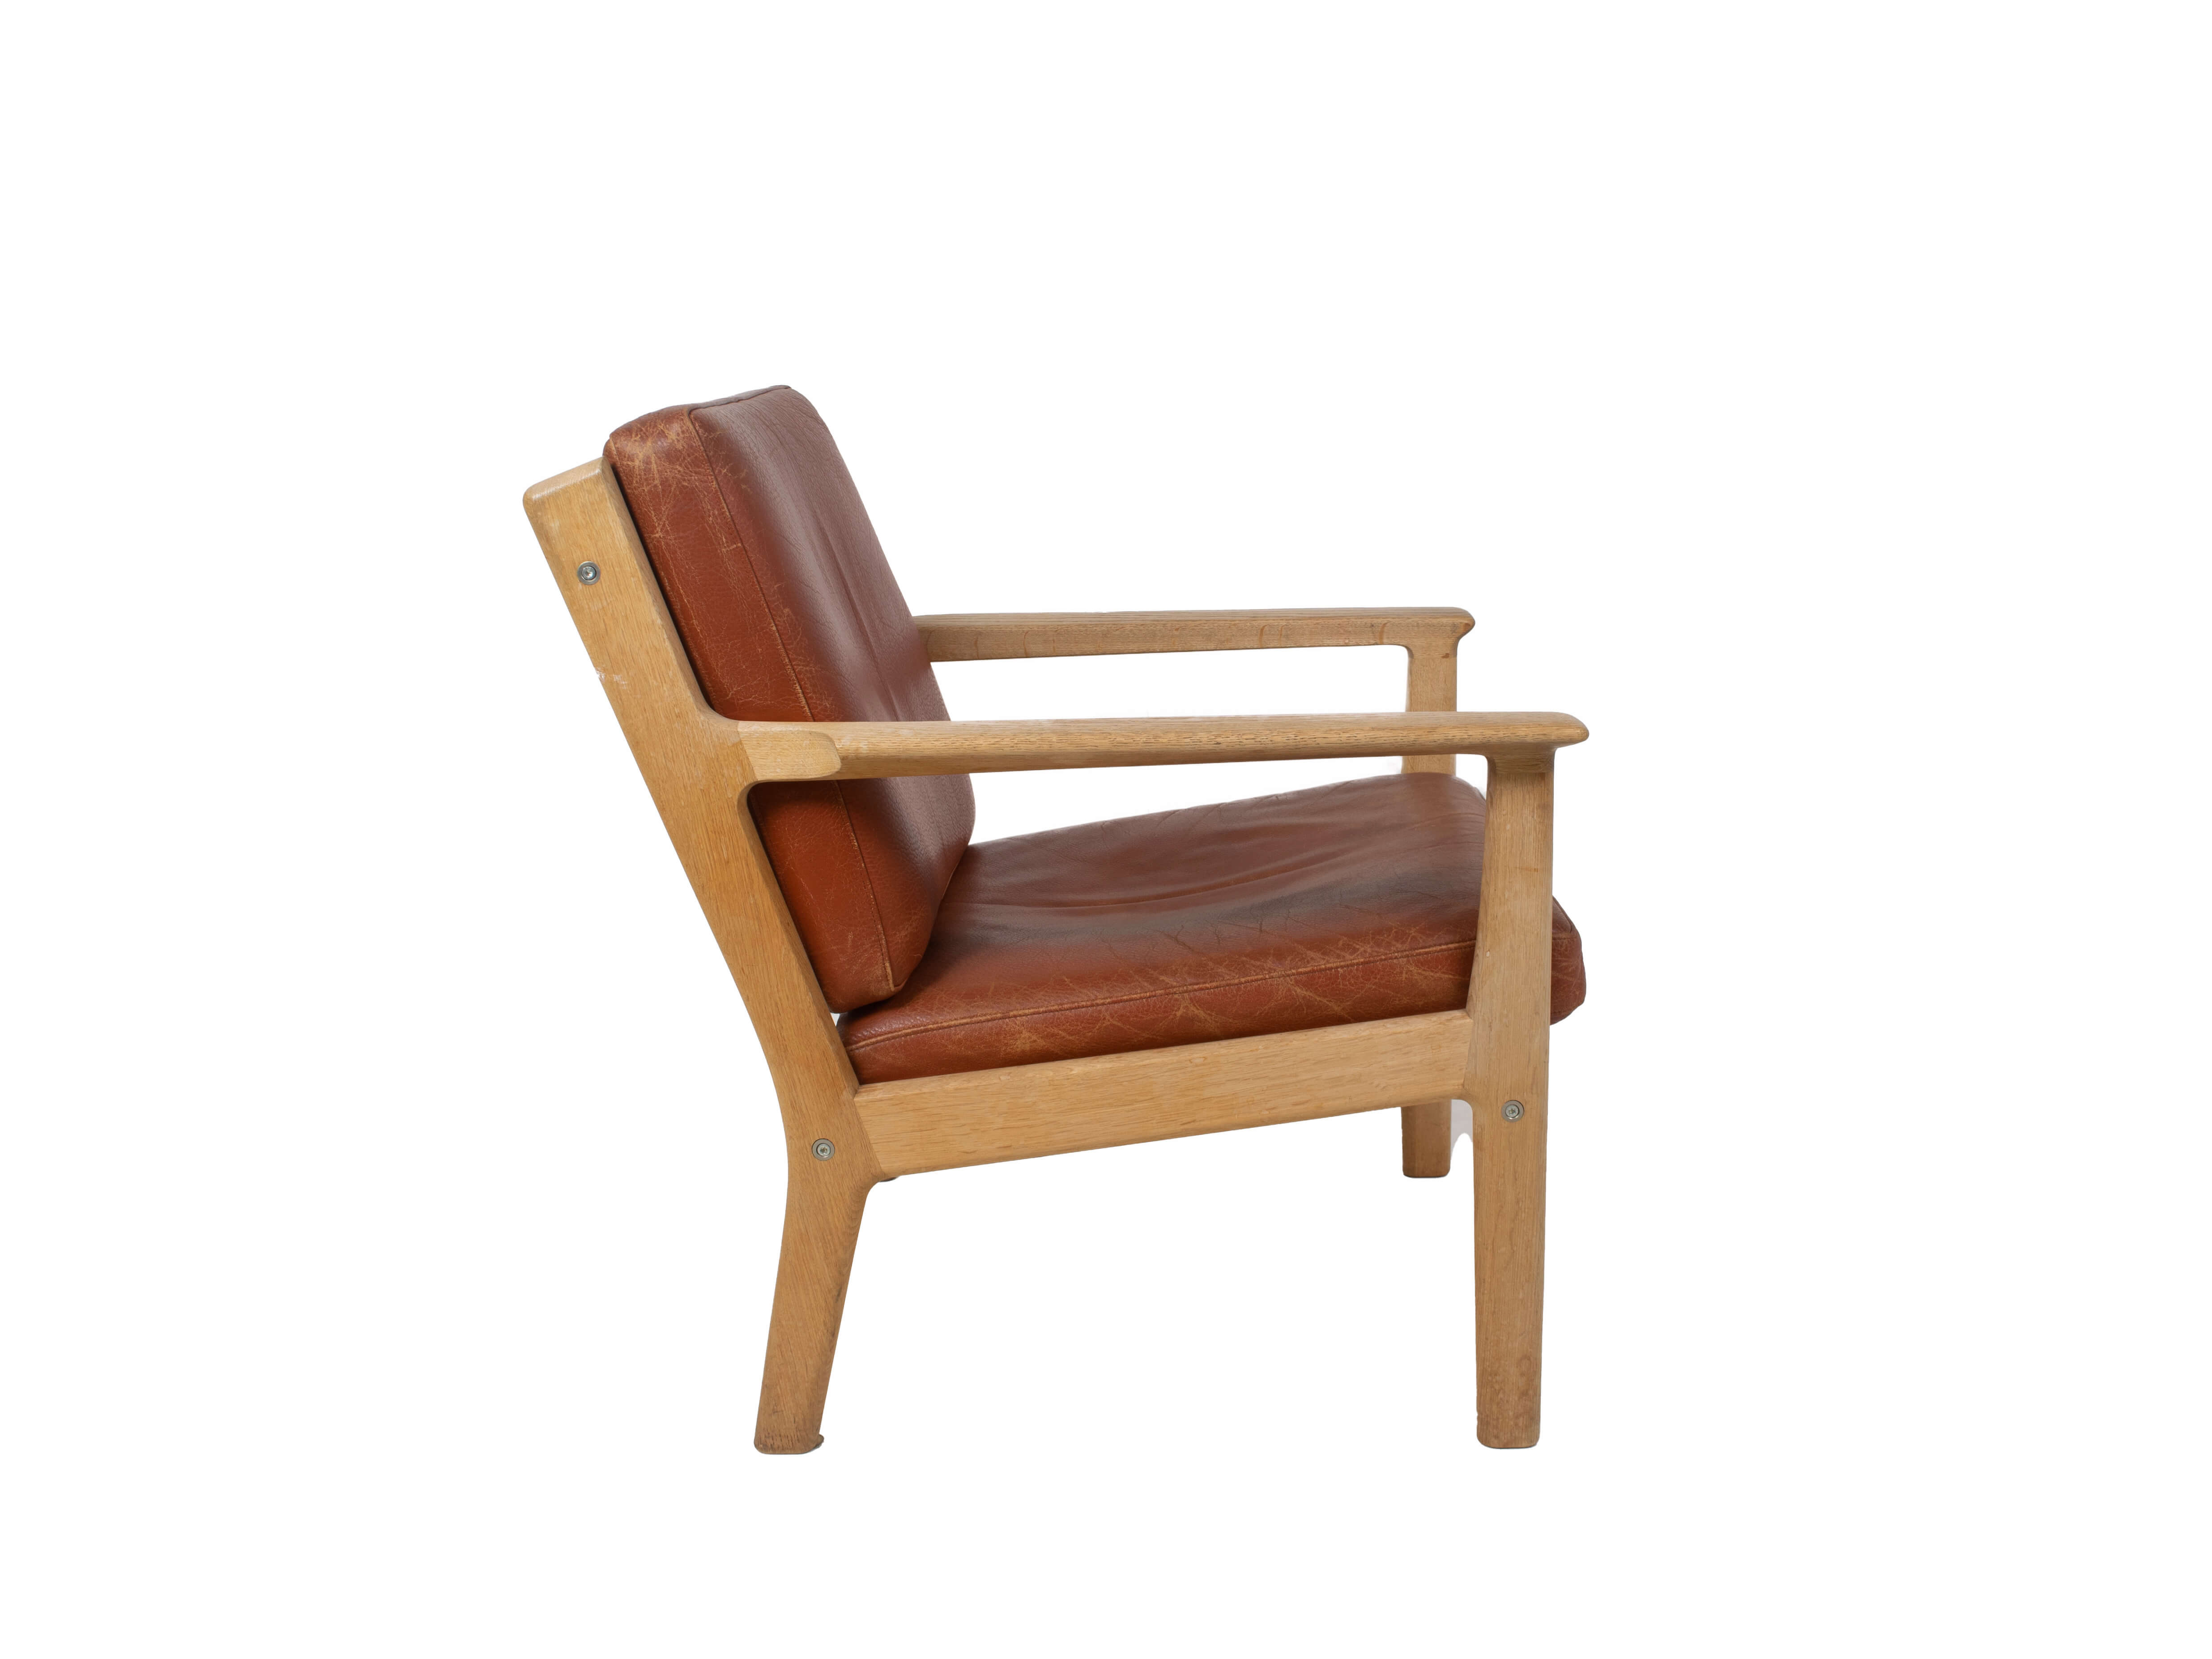 Side view Hans Wegner Arm Chair by Getama Model 265 in Oak and Leather, 1987